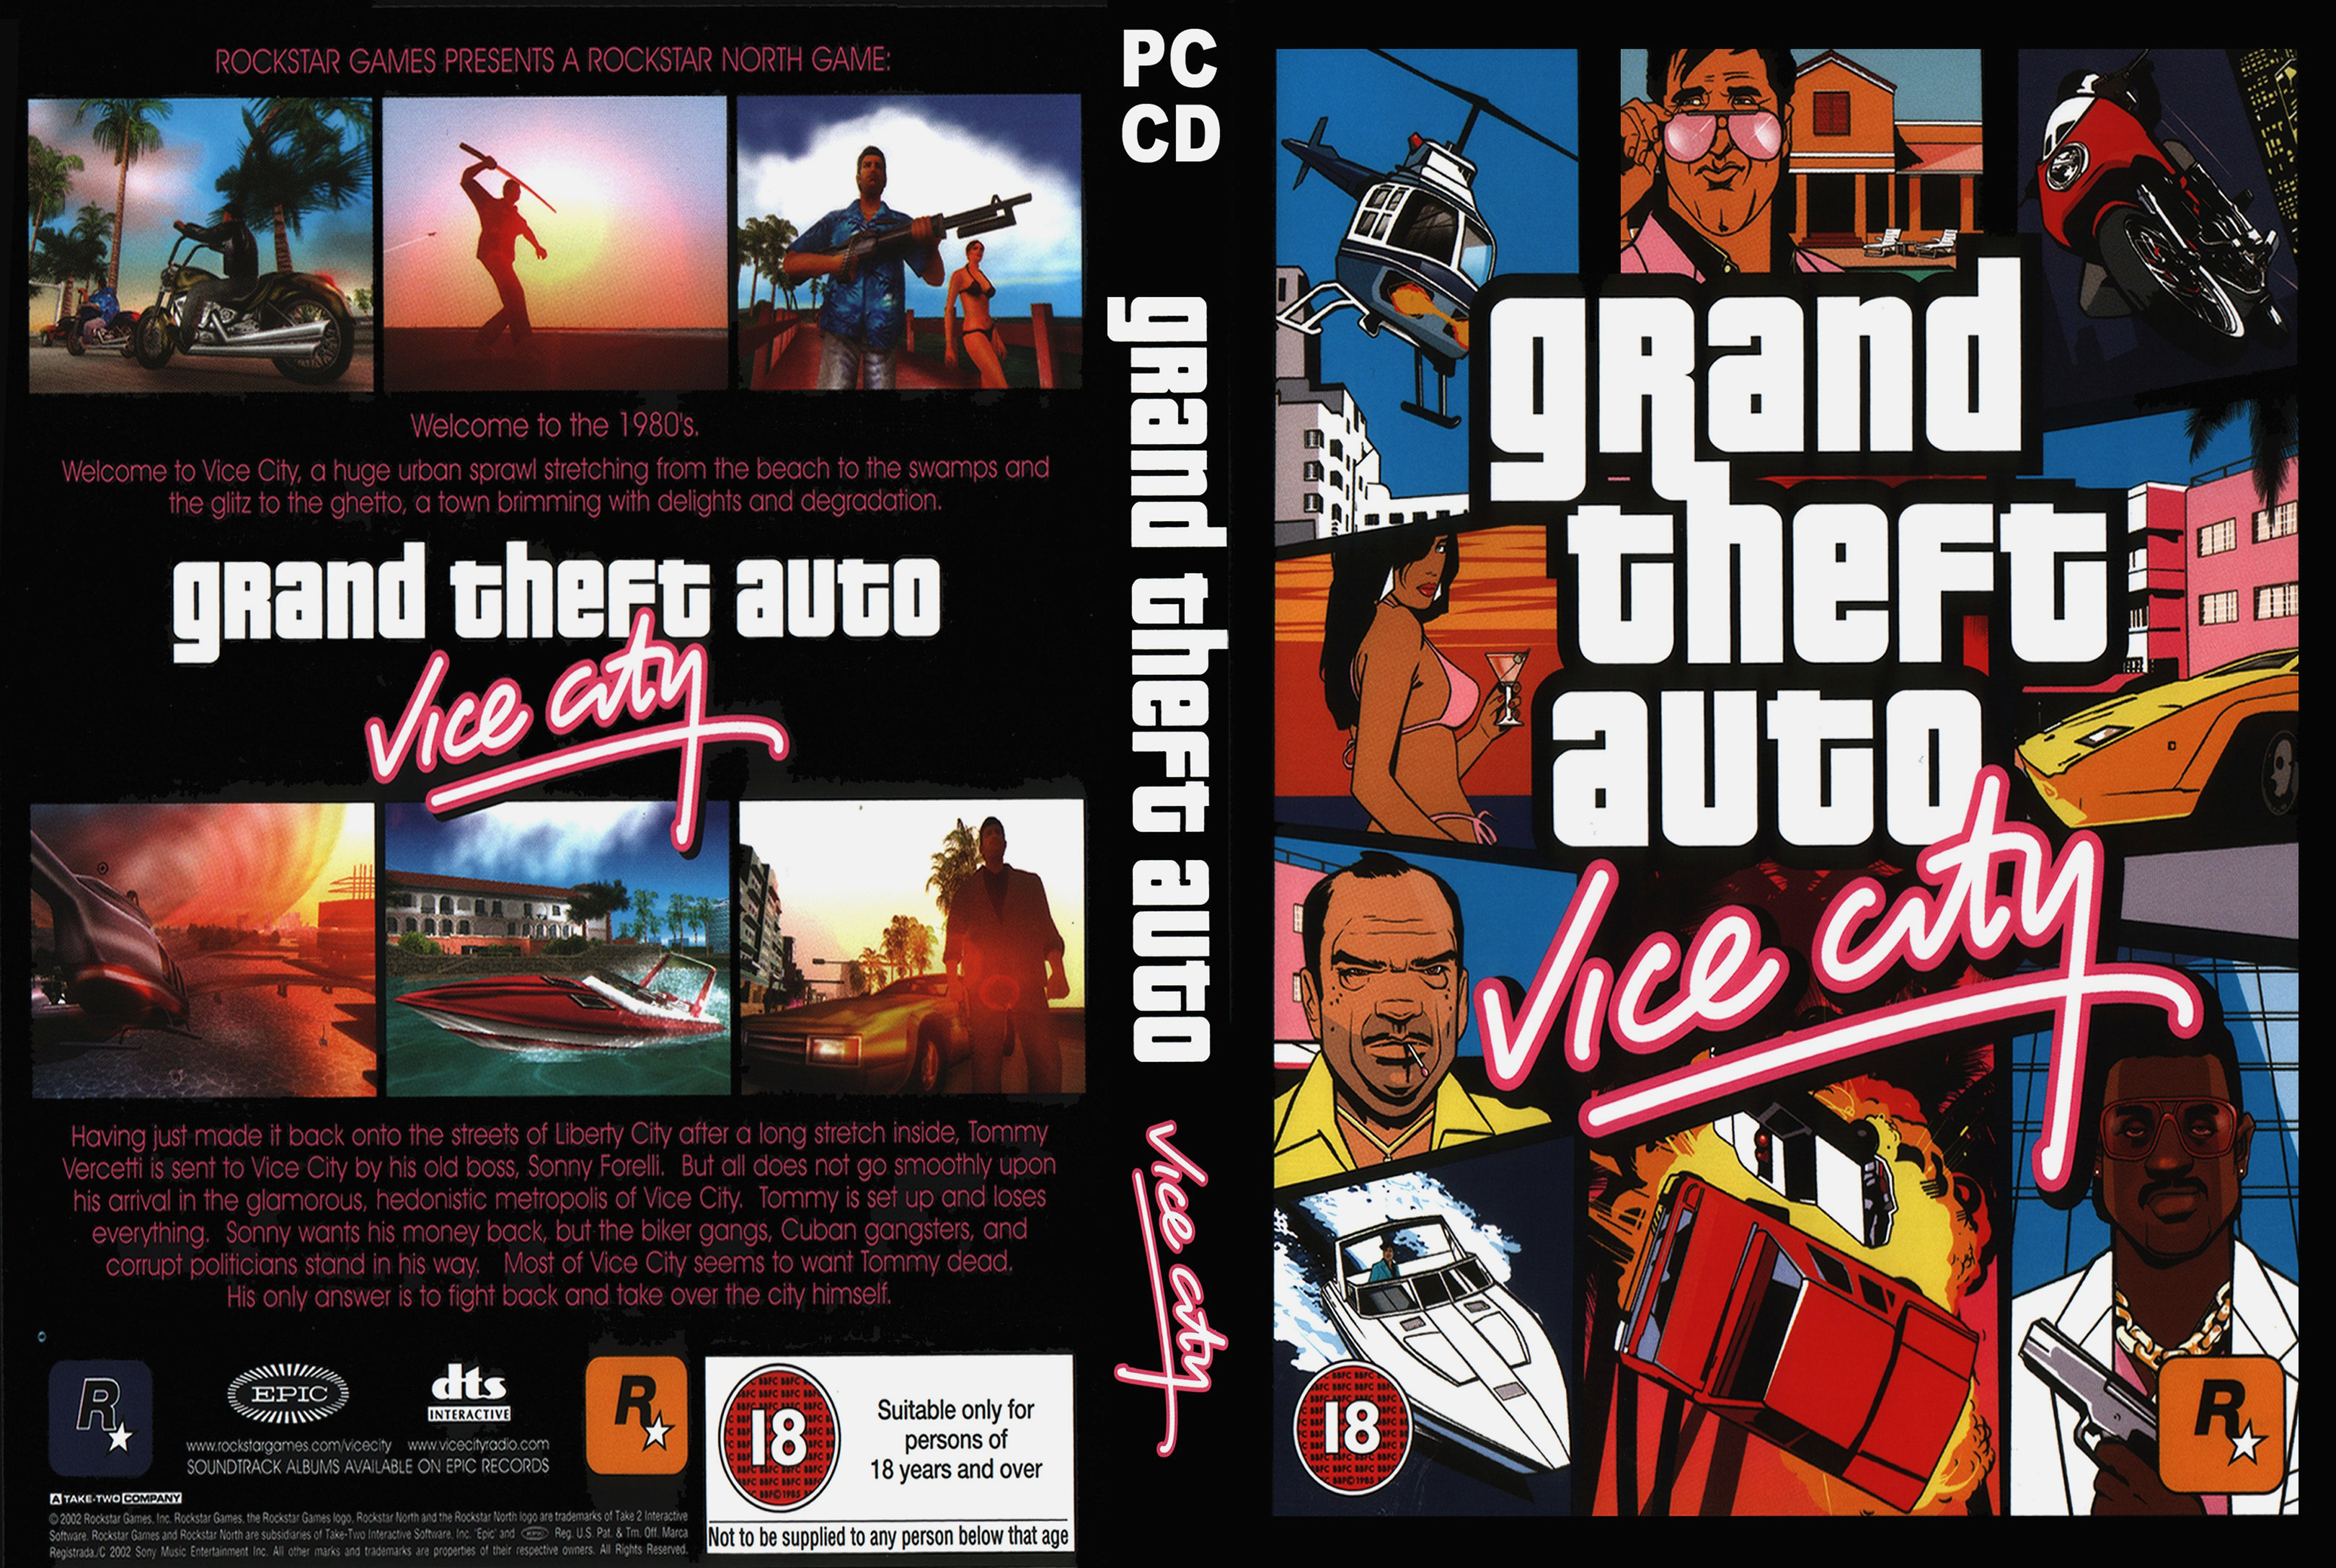 Gta vice city eroticрµ рїр°с'с‡ nackt pictures